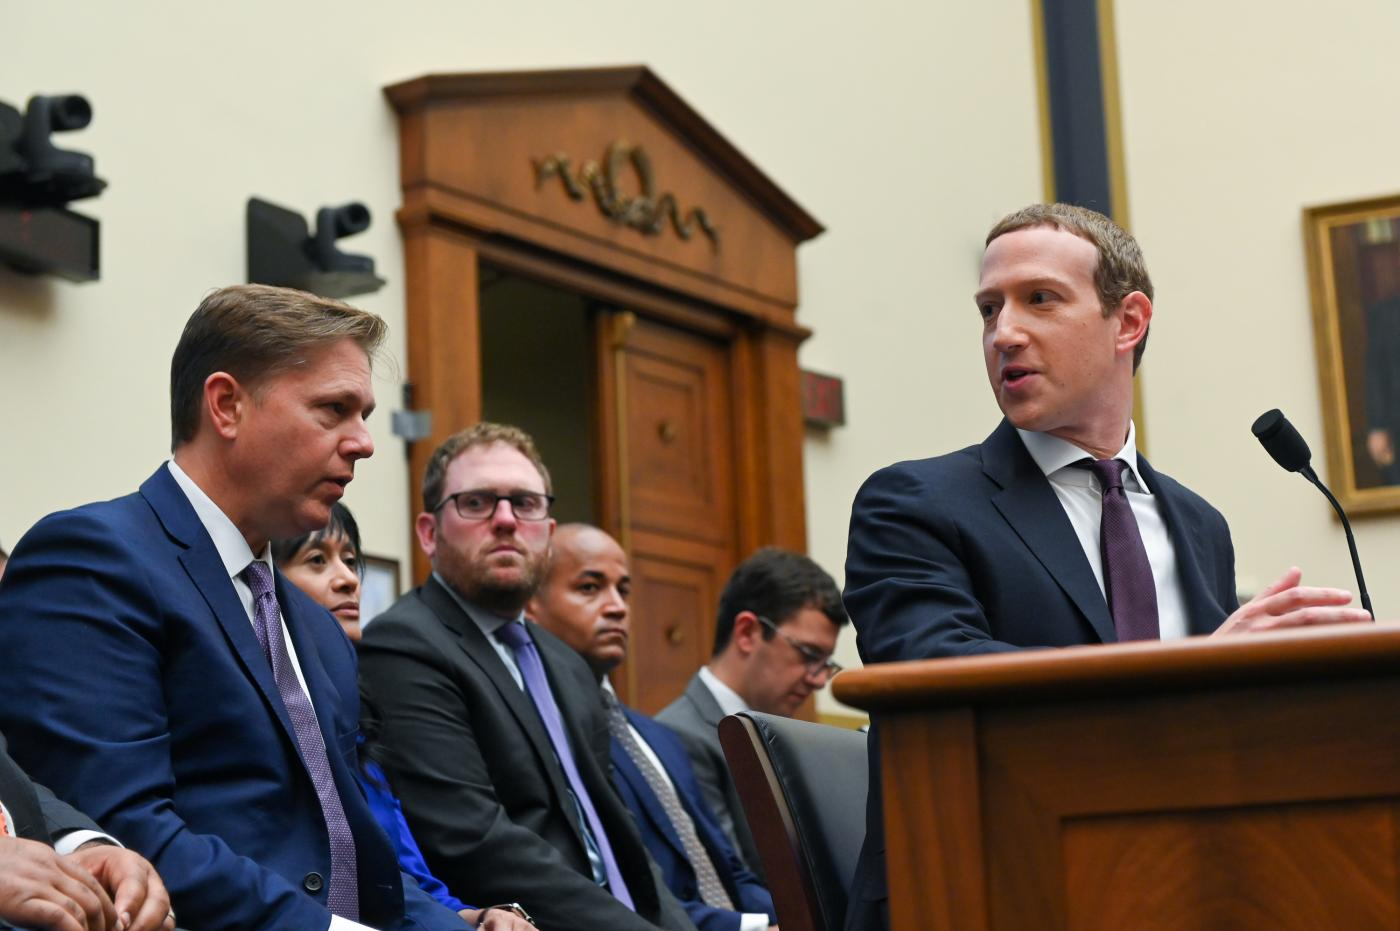 Facebook makes a decision: microtargeted, false political ads are fine